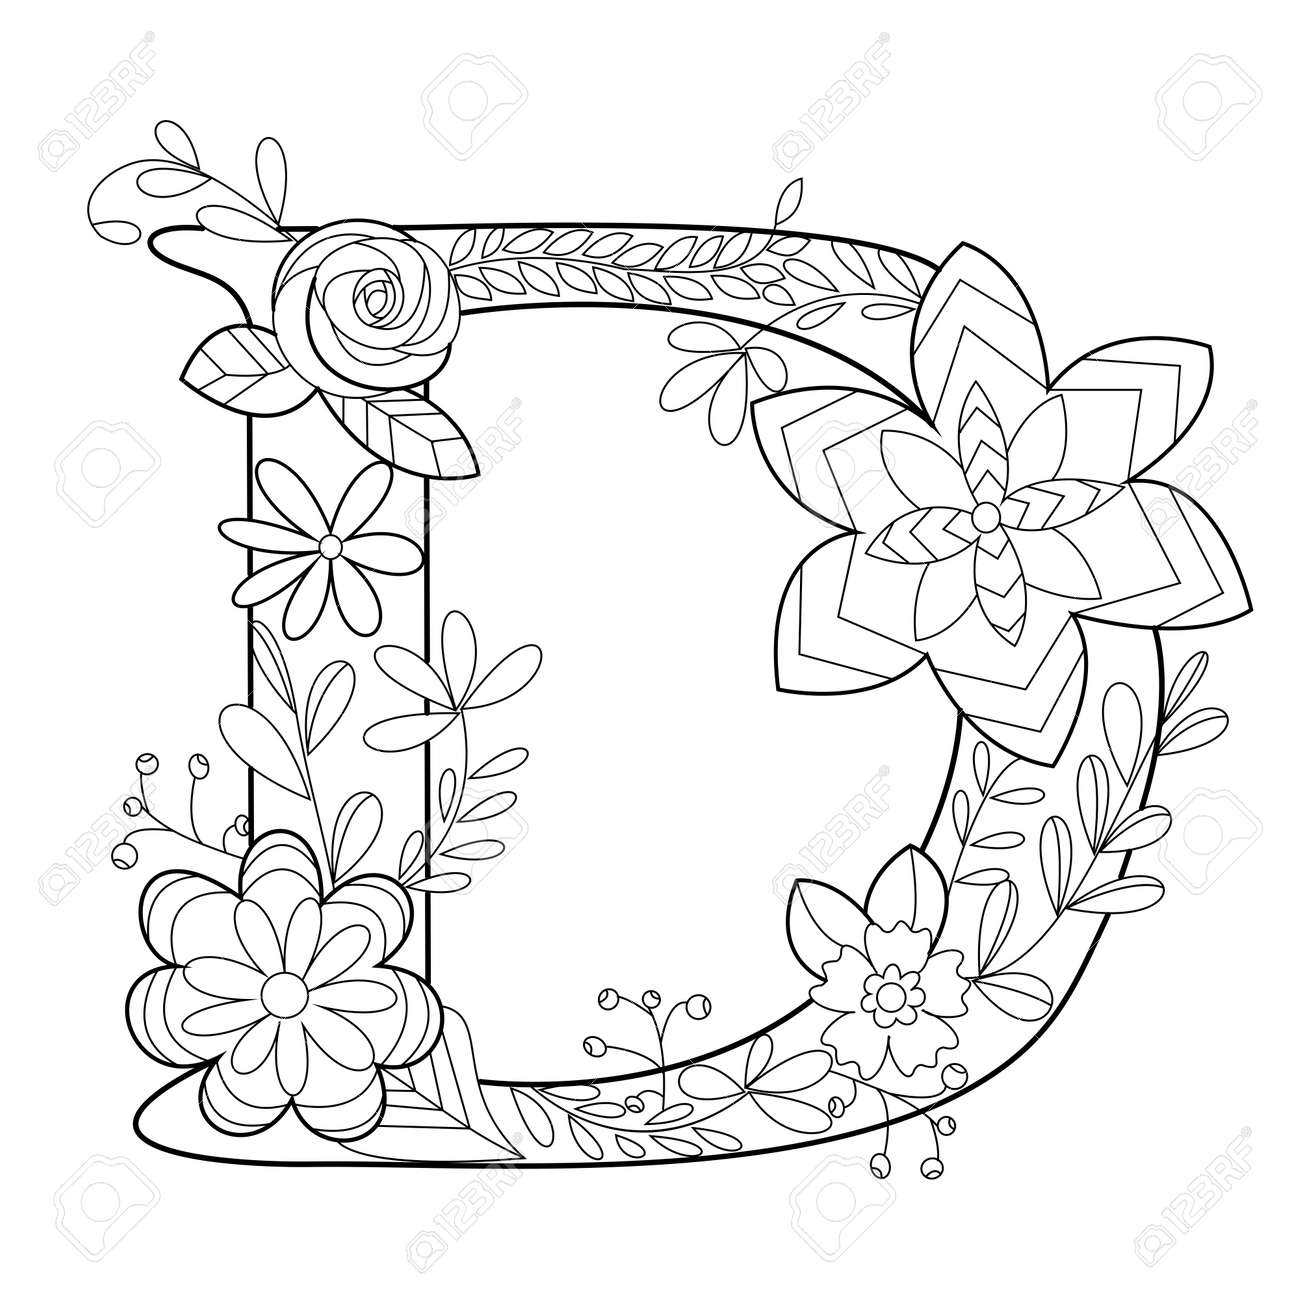 Coloriage Anti Stress Alphabet.Floral Alphabet Letter Coloring Book For Adults Vector Illustration